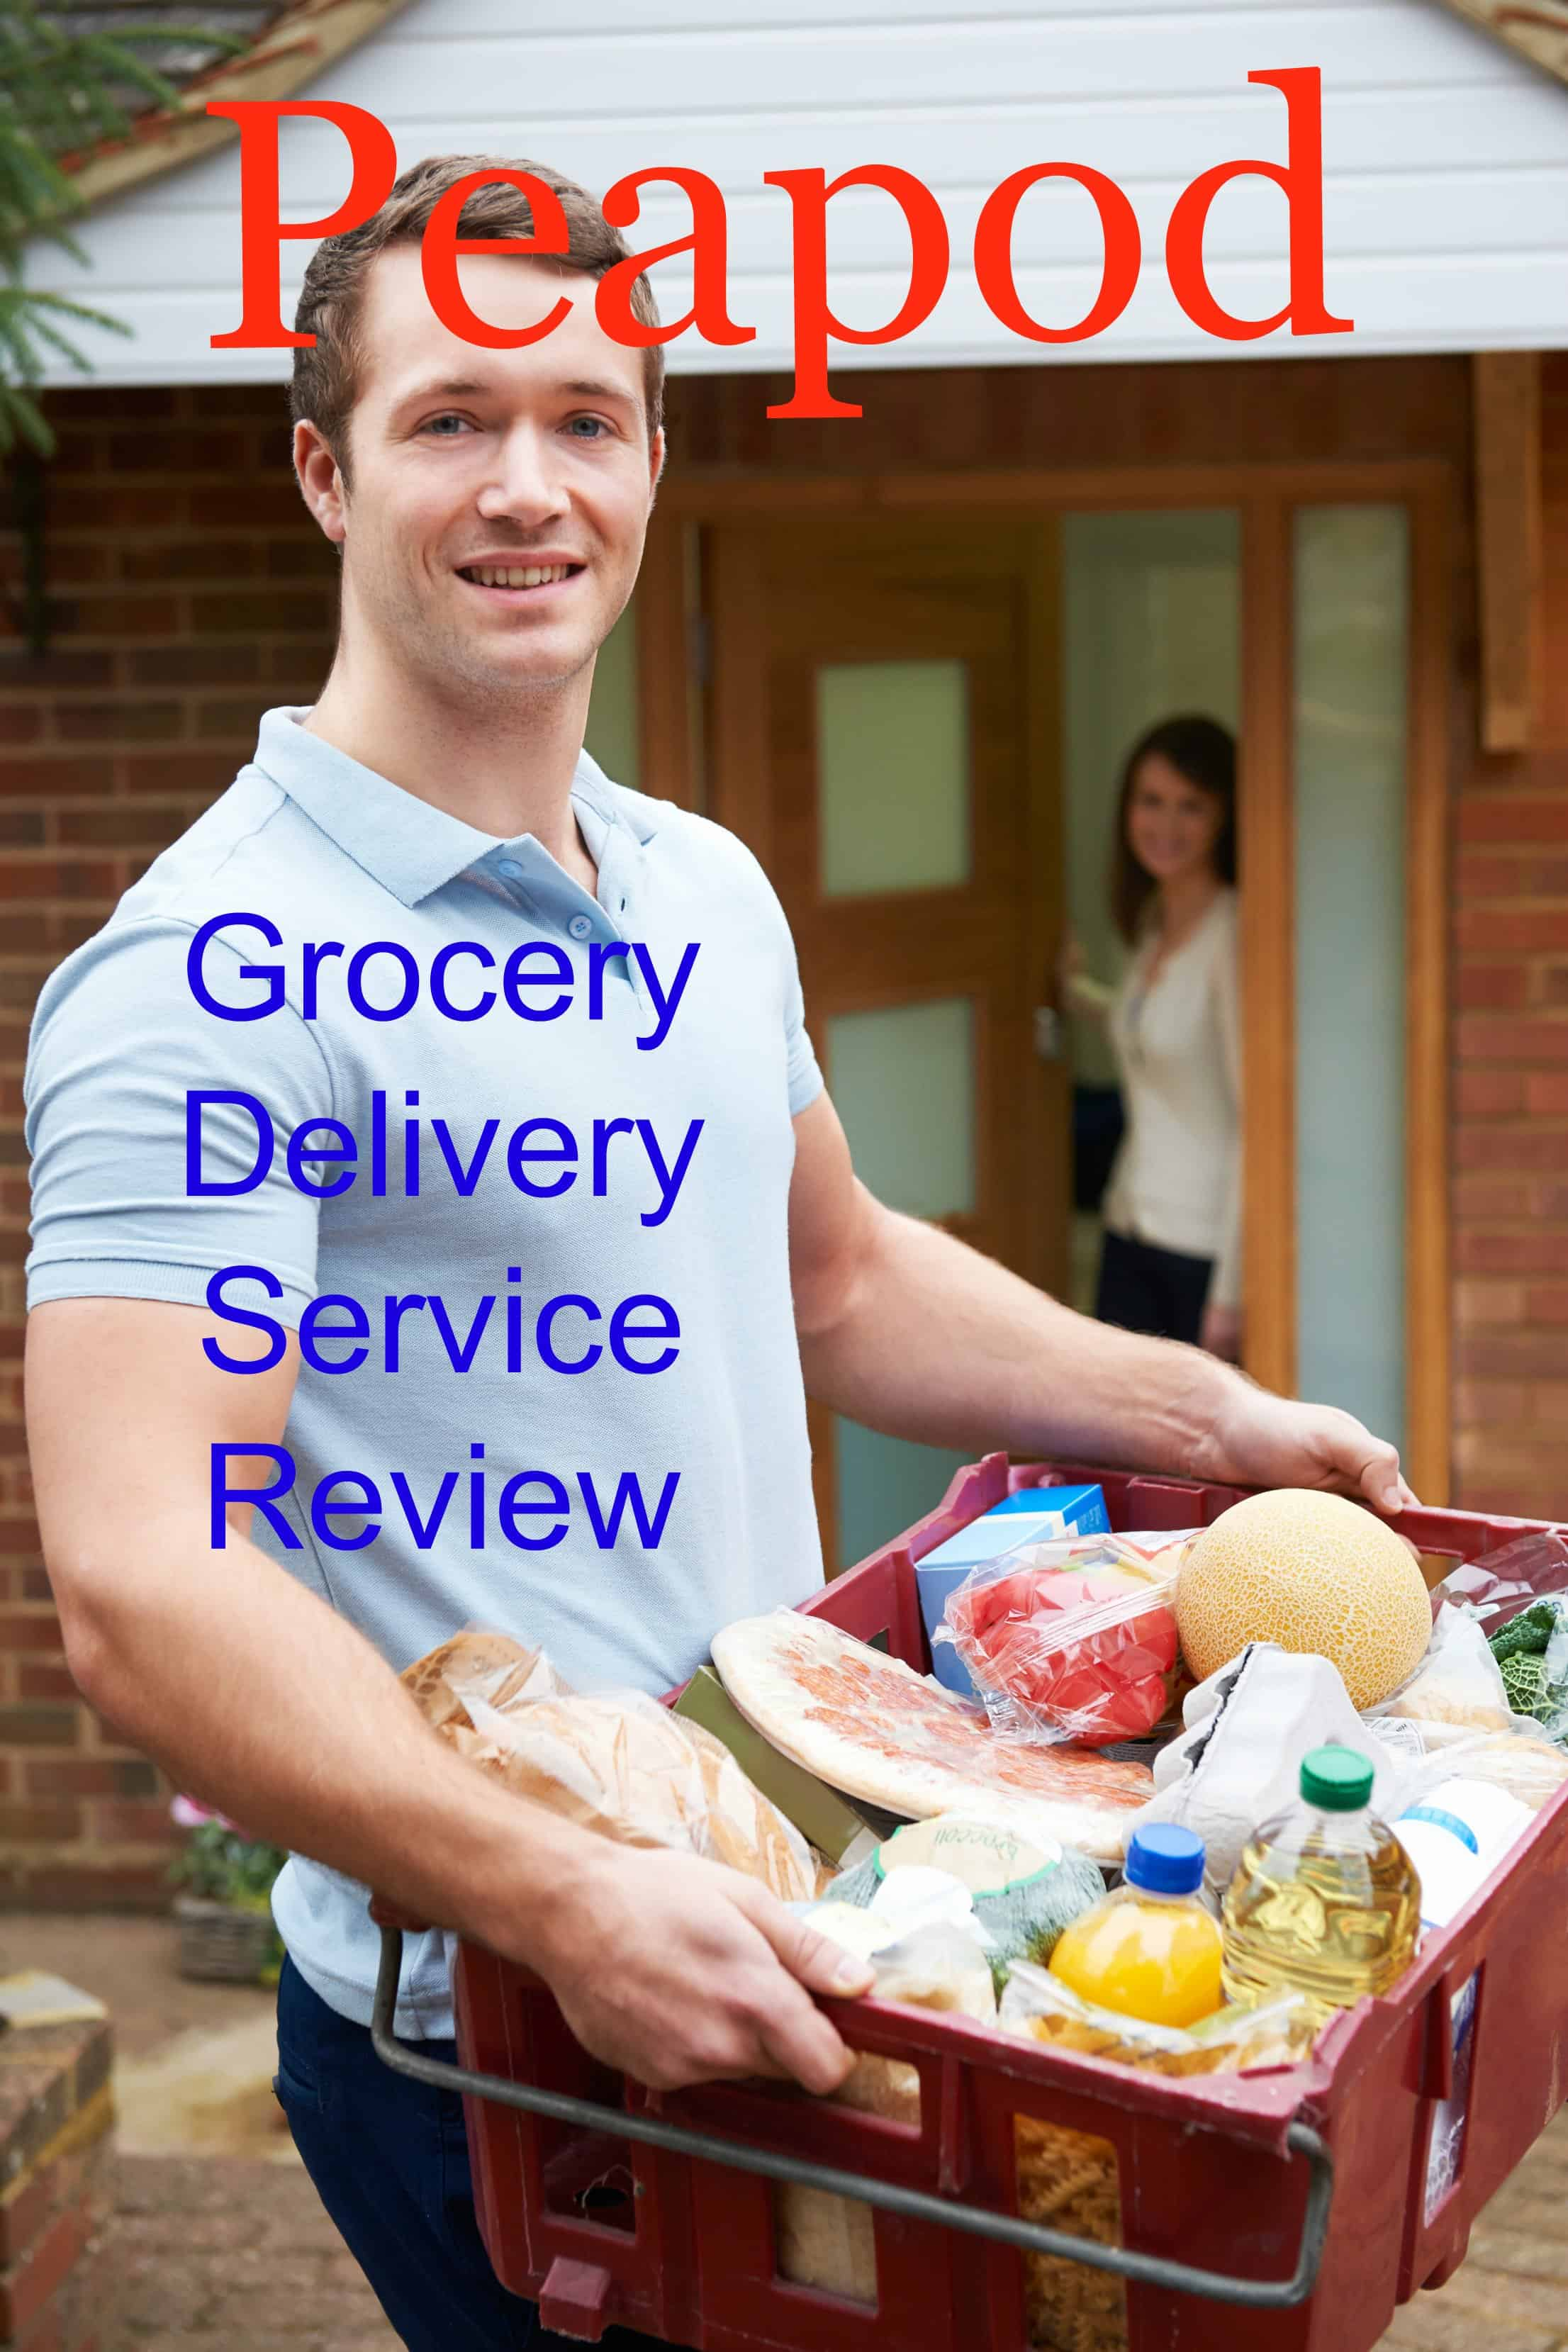 Updated Review: Why I Still Love Peapod Grocery Delivery Service